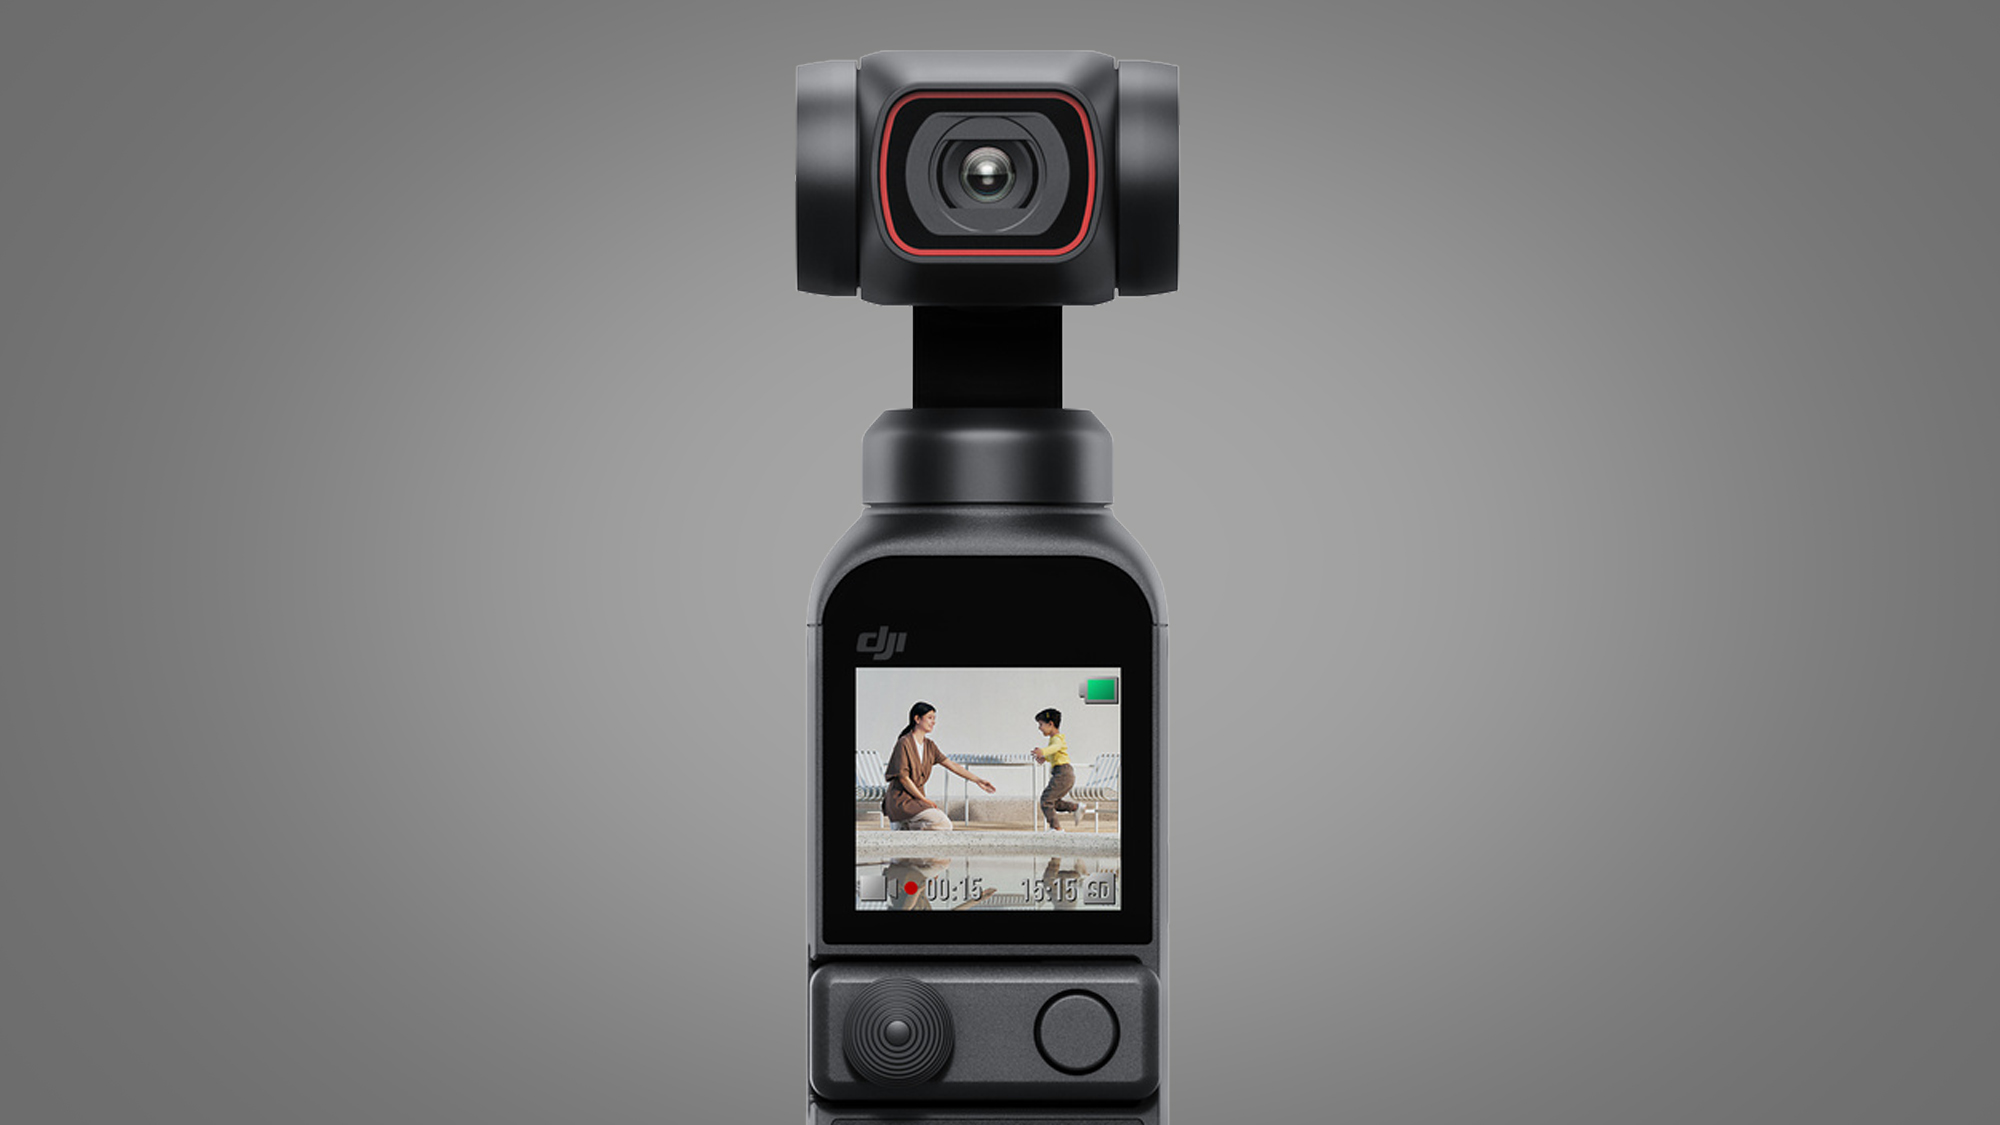 The front of the DJI Pocket 2 with its screen turned on